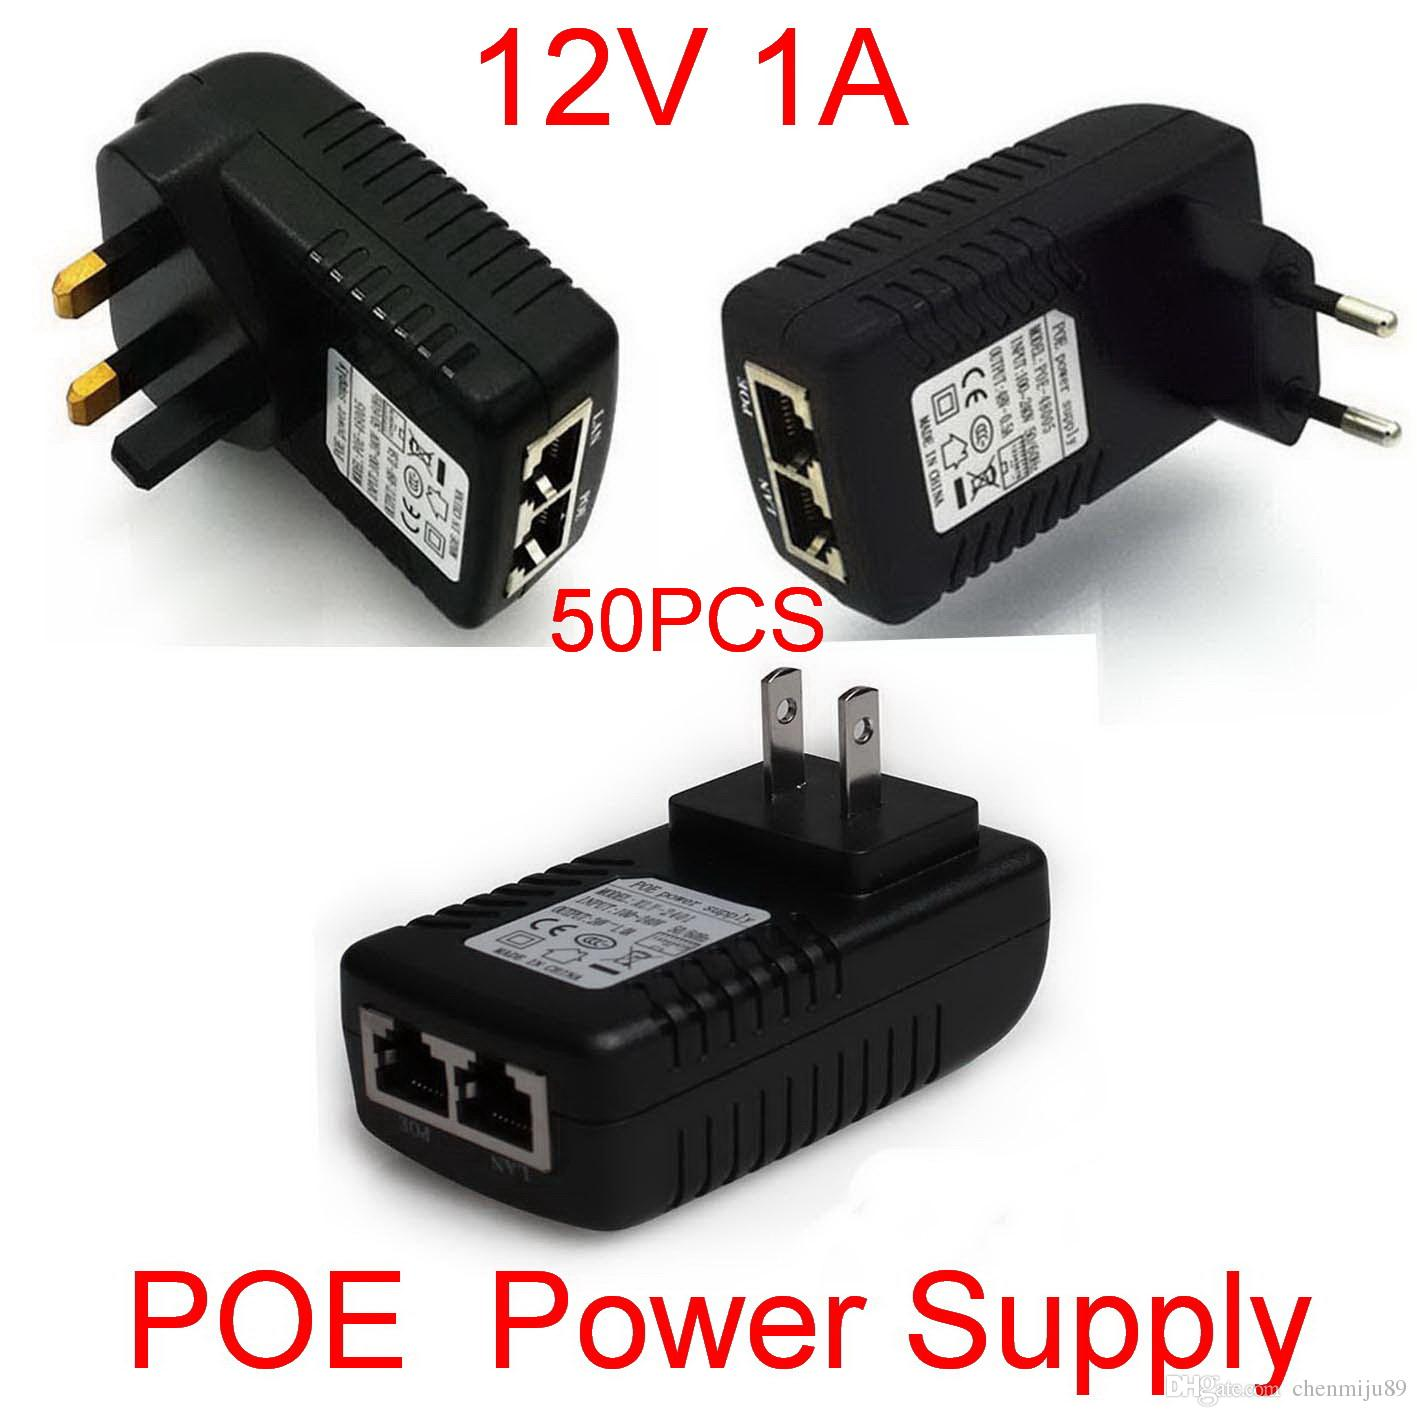 hight resolution of high quality dc 12v 1a wall plug poe injector ethernet adapter ip phone camera power supply dhl cheap electricity providers cheap electricity supply from